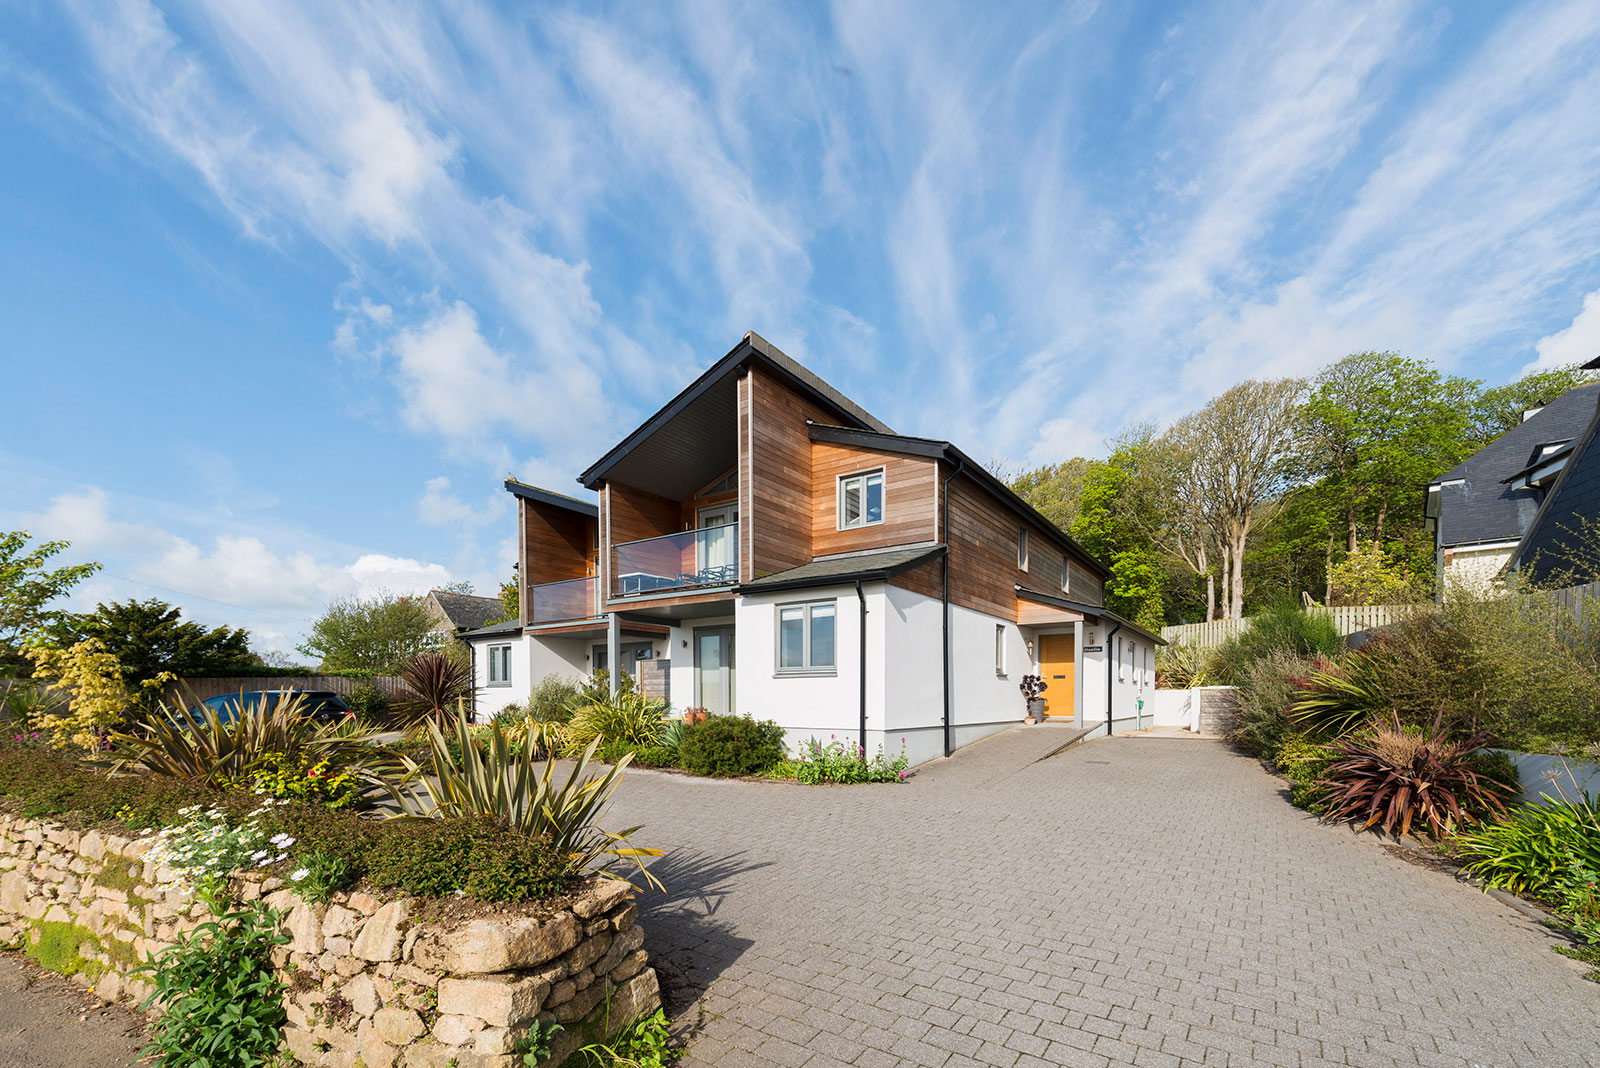 contemporary glazed riverfront homes in lelant, cornwall